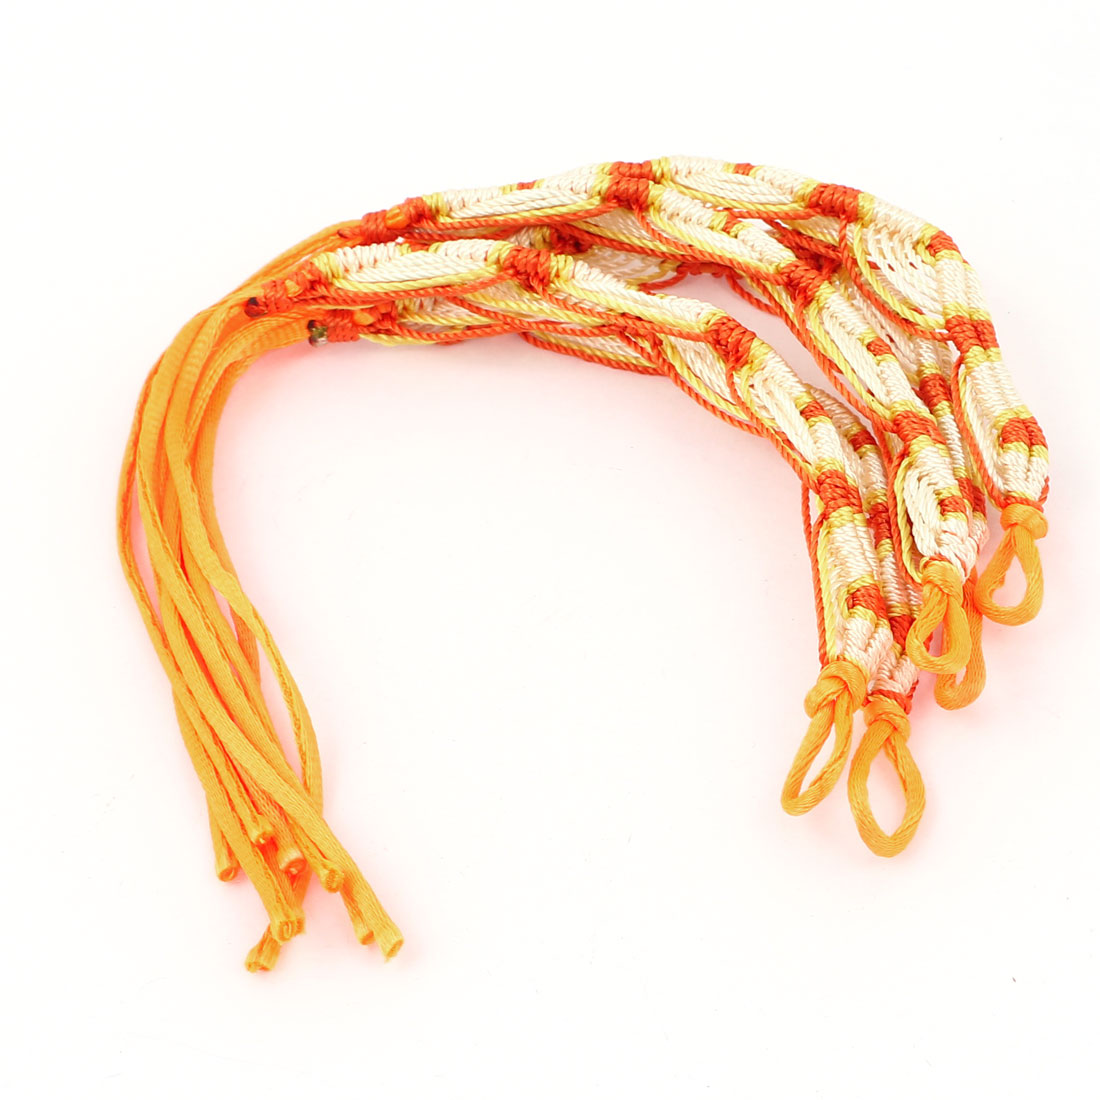 5 Pcs Orange Beige Nylon Cord Handwork Braided Wrist Decor Bracelet for Lady